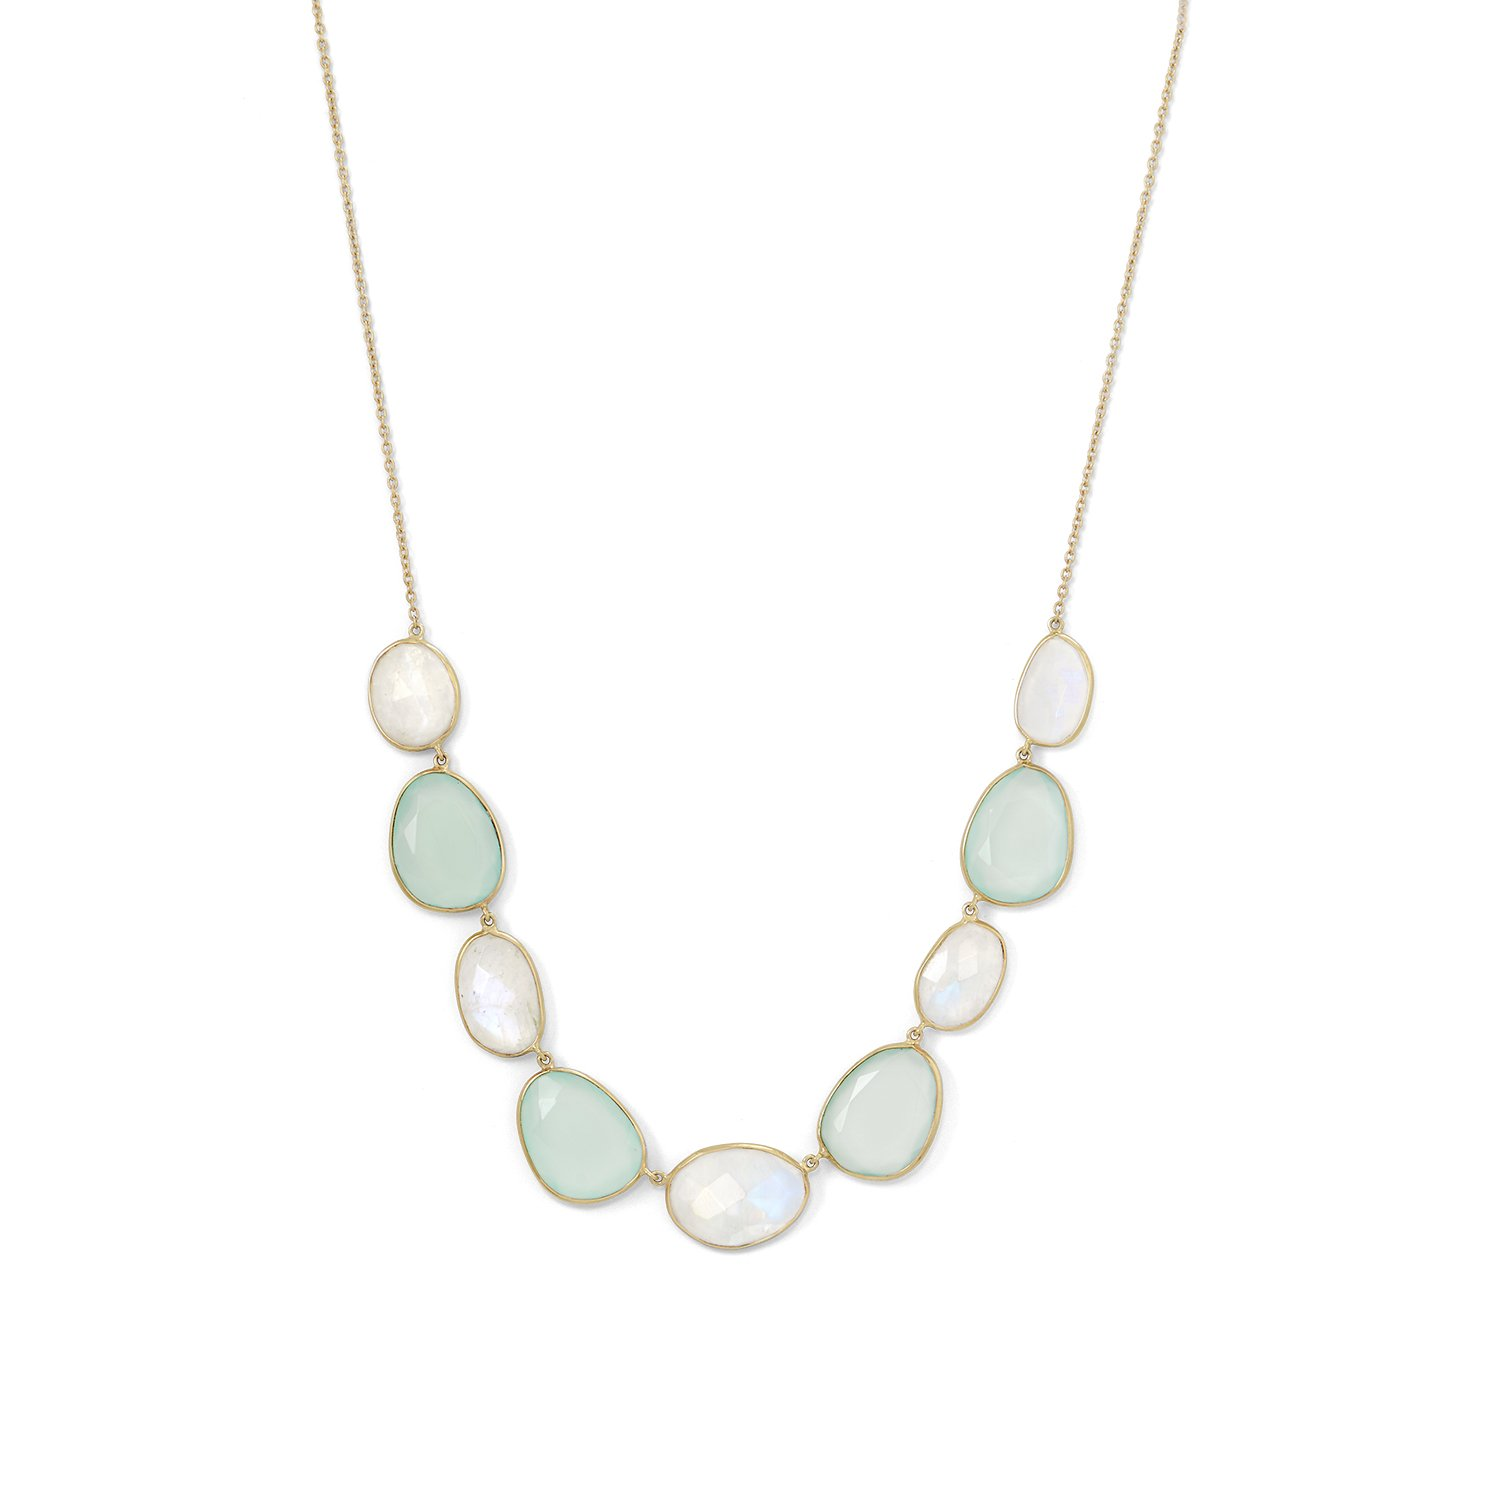 Rainbow Moonstone and Green Chalcedony Necklace Gold-plated Sterling Silver by unknown